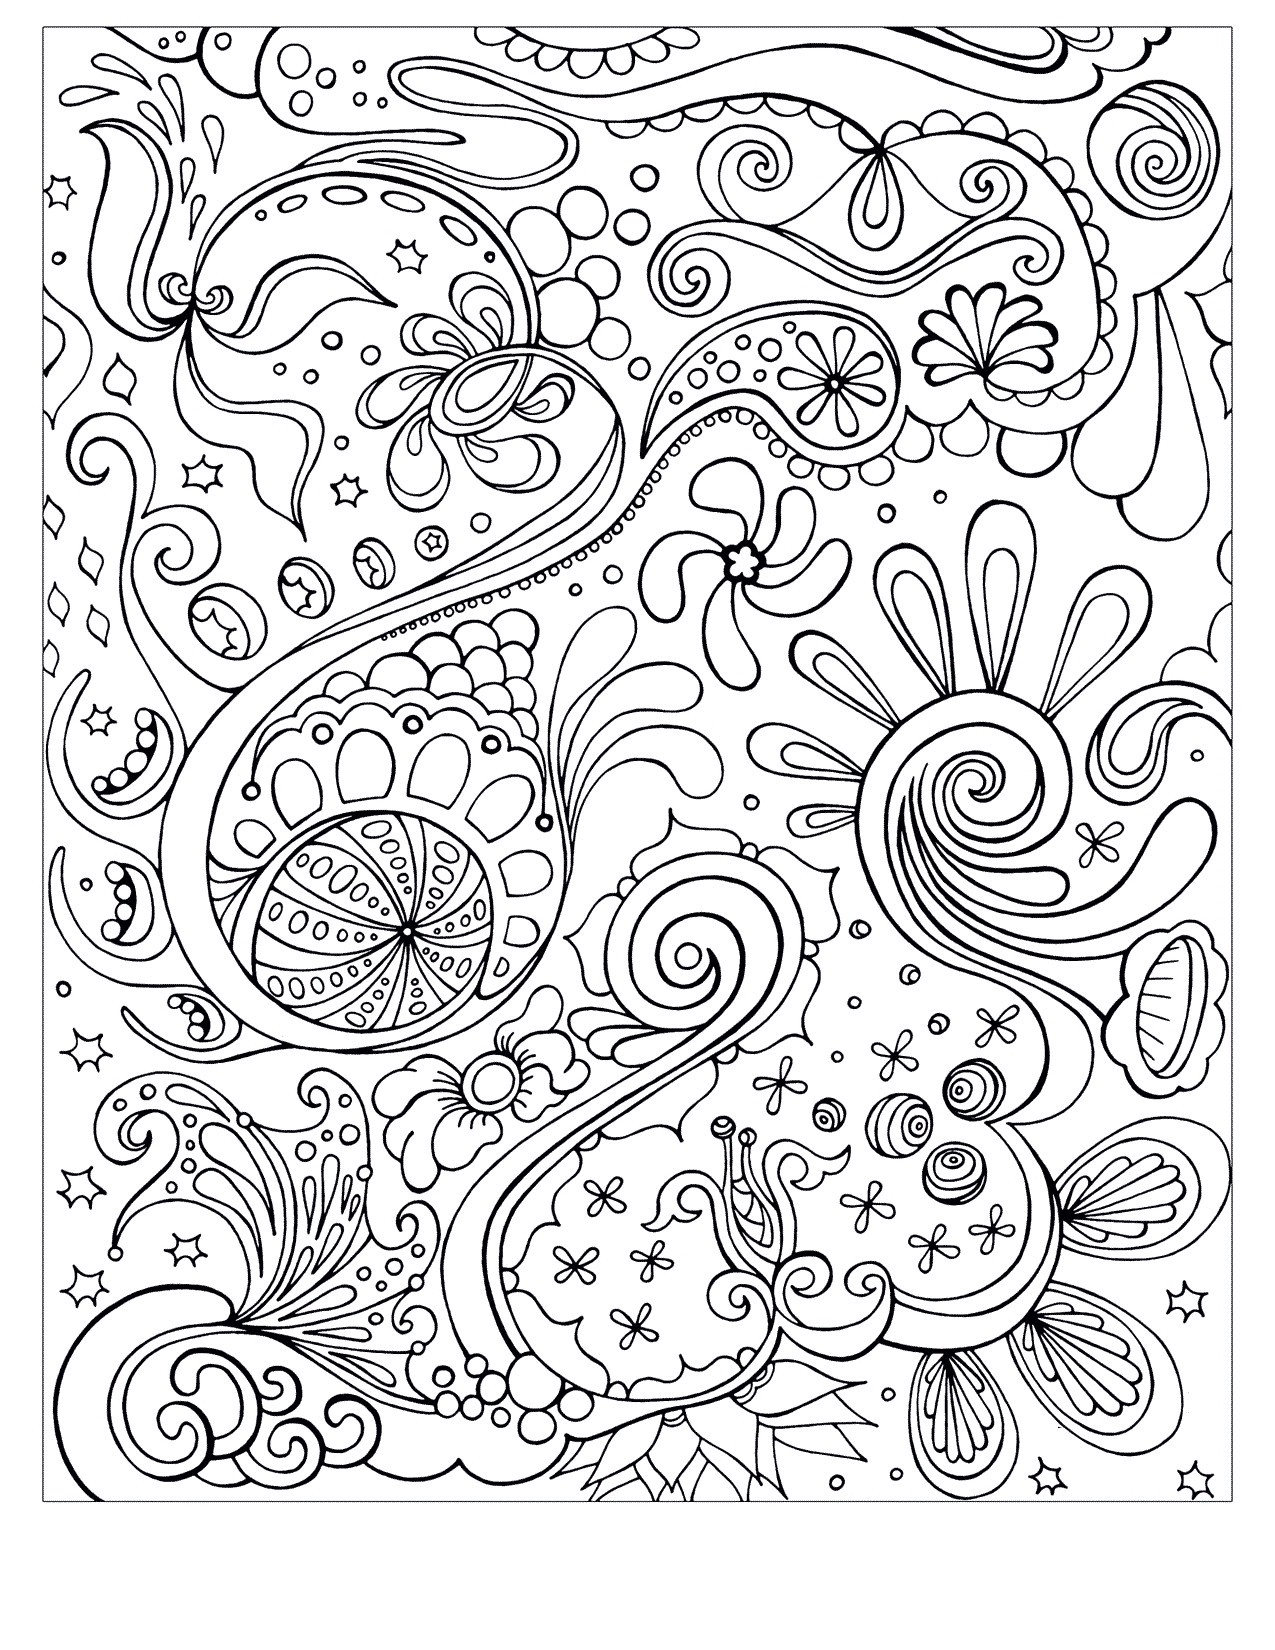 make your own coloring pages for free Collection-Coloring for Fun Printable Colouring Family C3 82 C2 A0 0d Free Coloring Pages – Fun 14-a